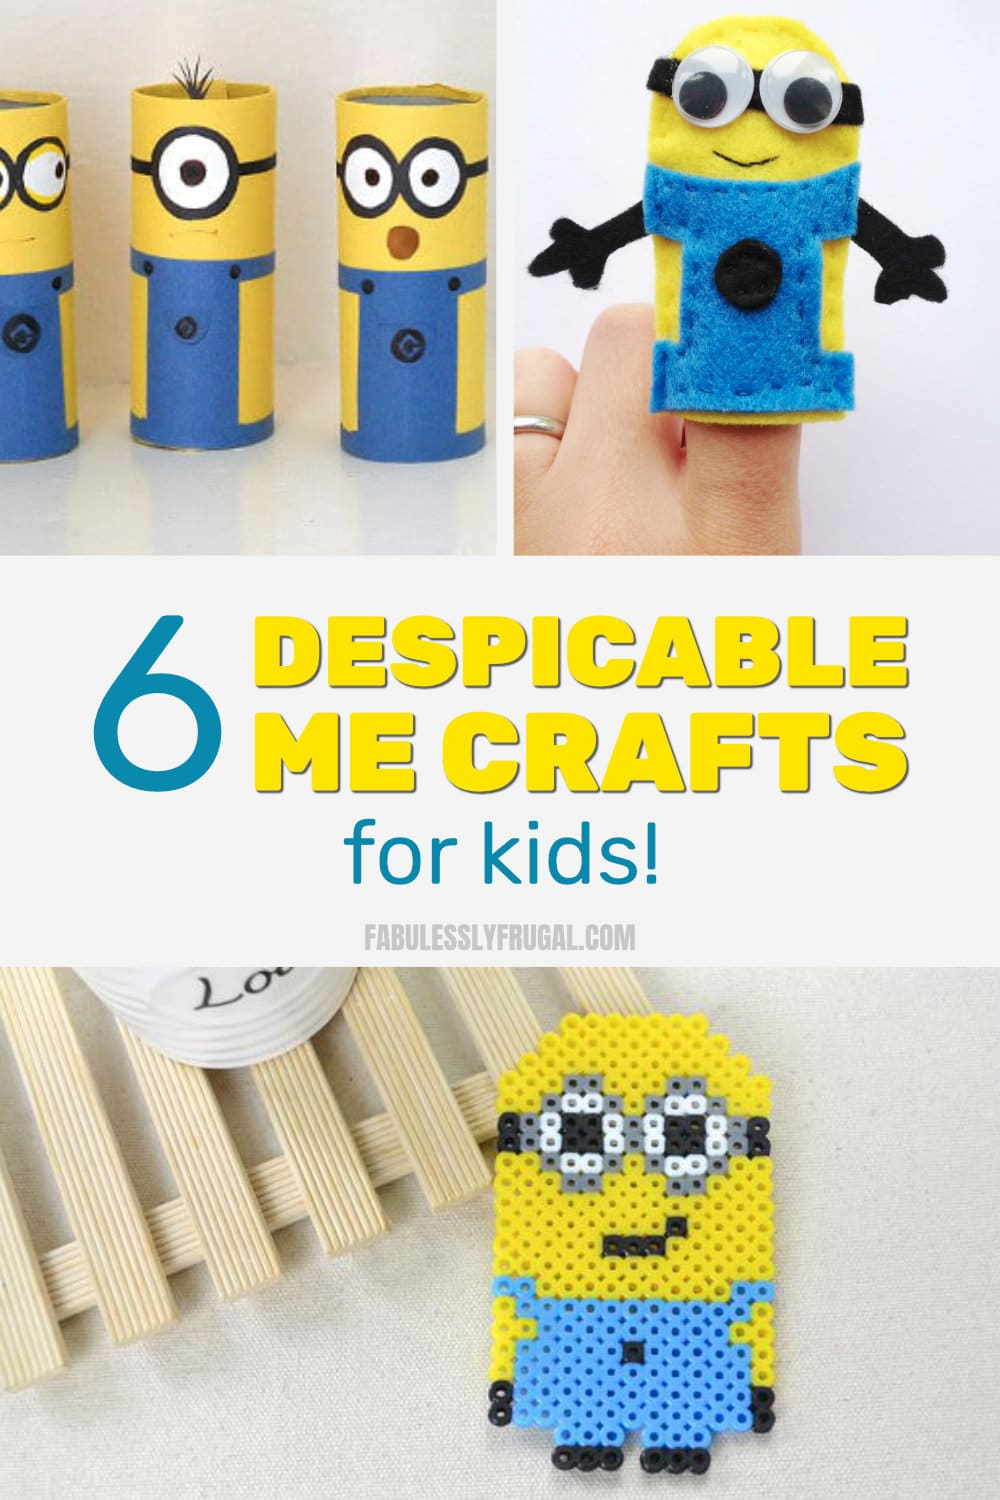 Despicable me crafts for kids